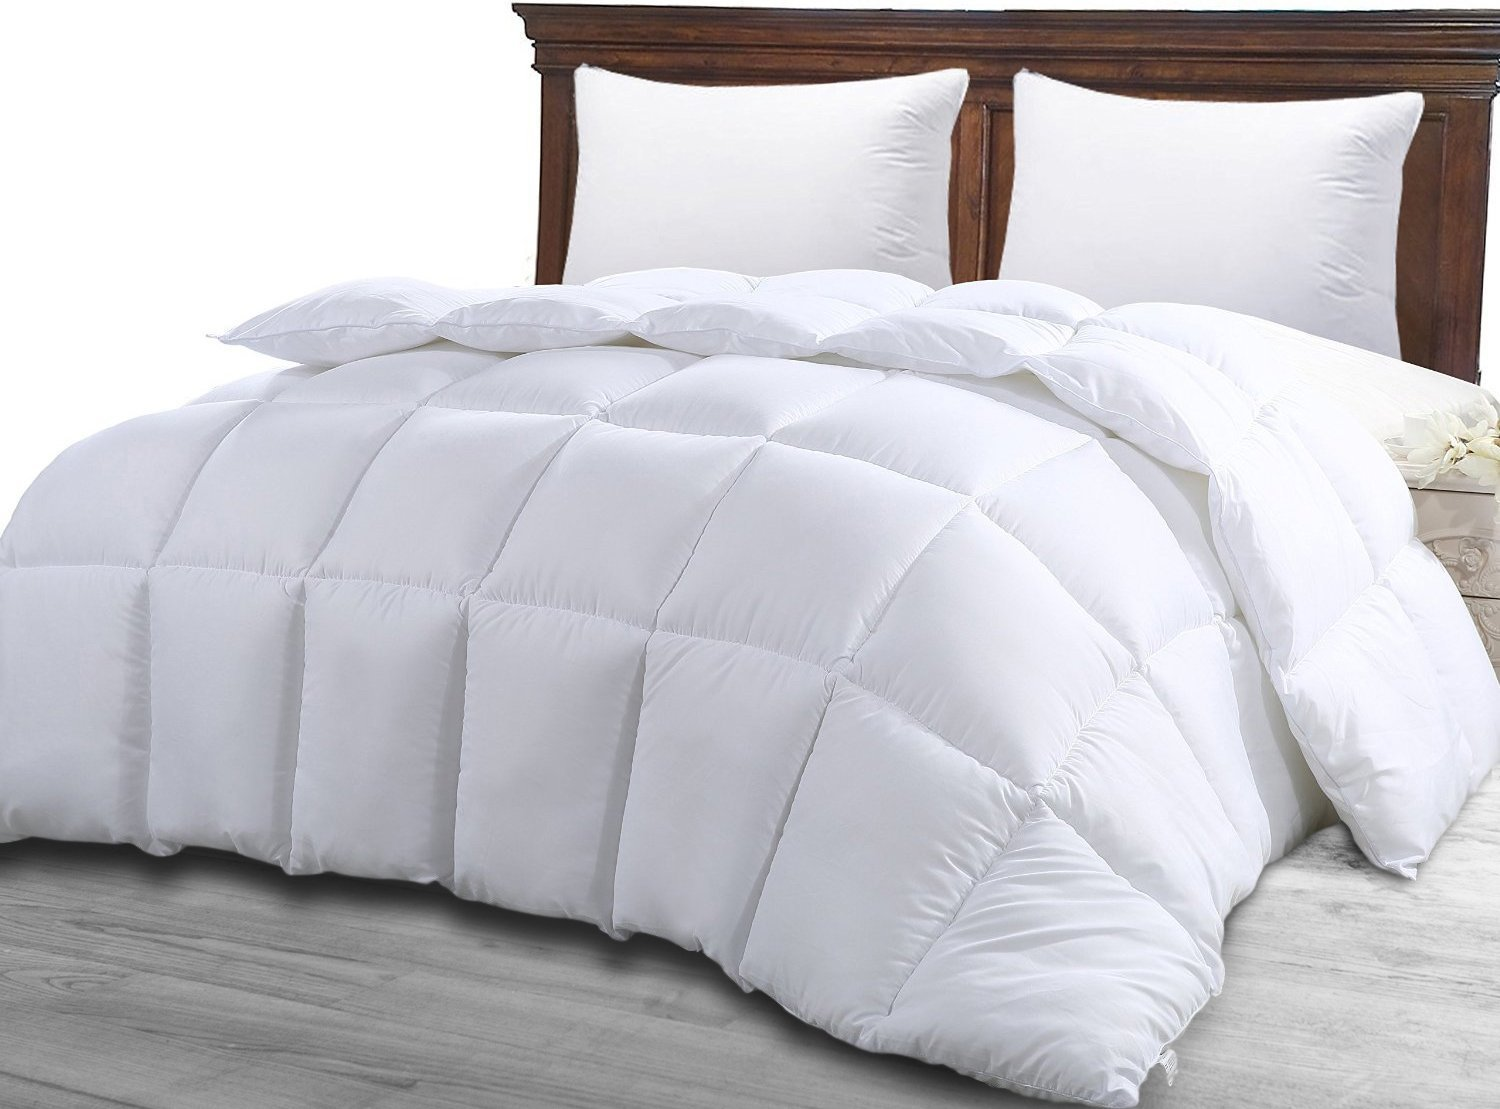 Top 10 Best Bed Comforters In 2019 Reviews